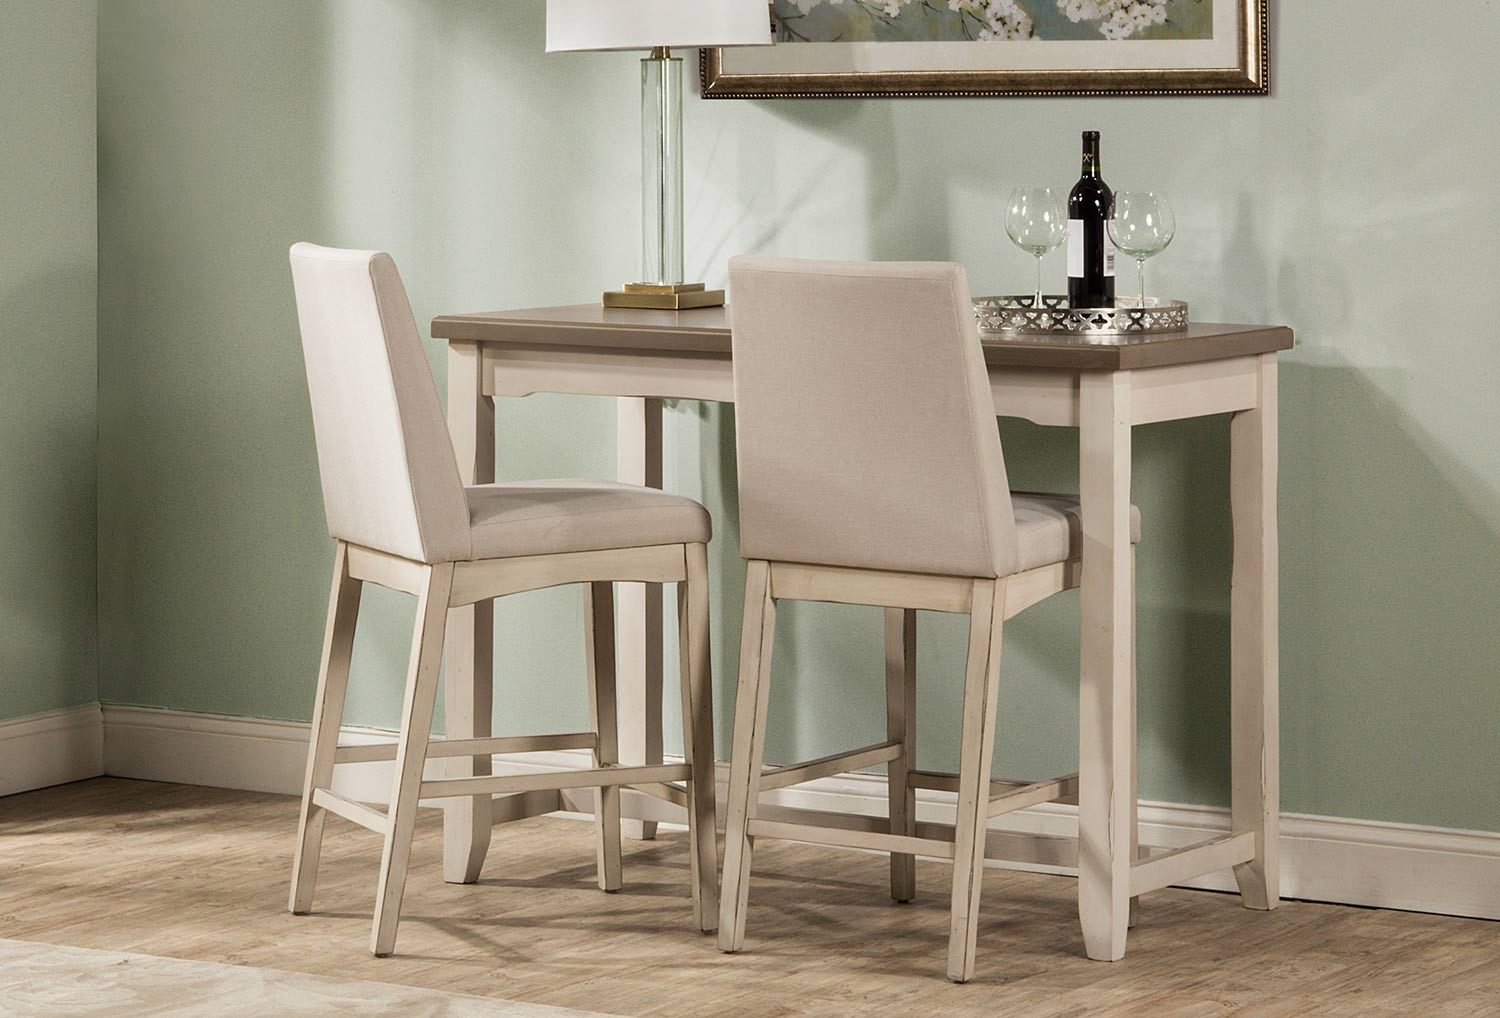 Hillsdale Clarion 3 Piece Counter Height Dining Set GrayWhite HD 4542CDT3S4 At